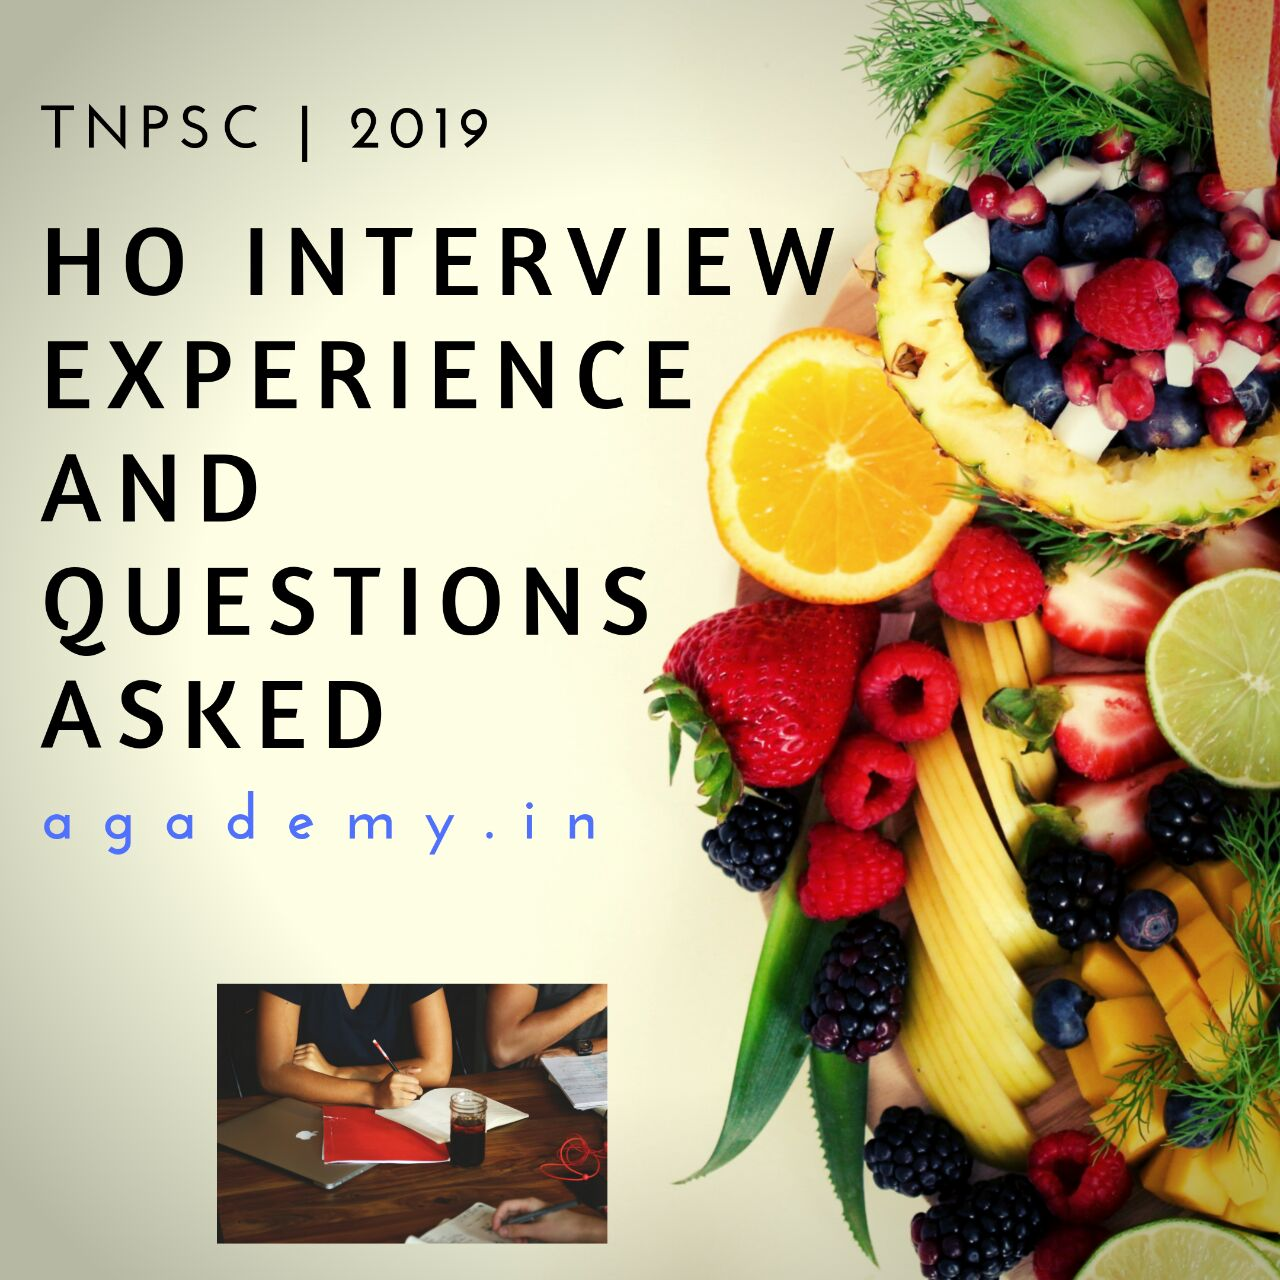 Horticulture officer exam interview experiences